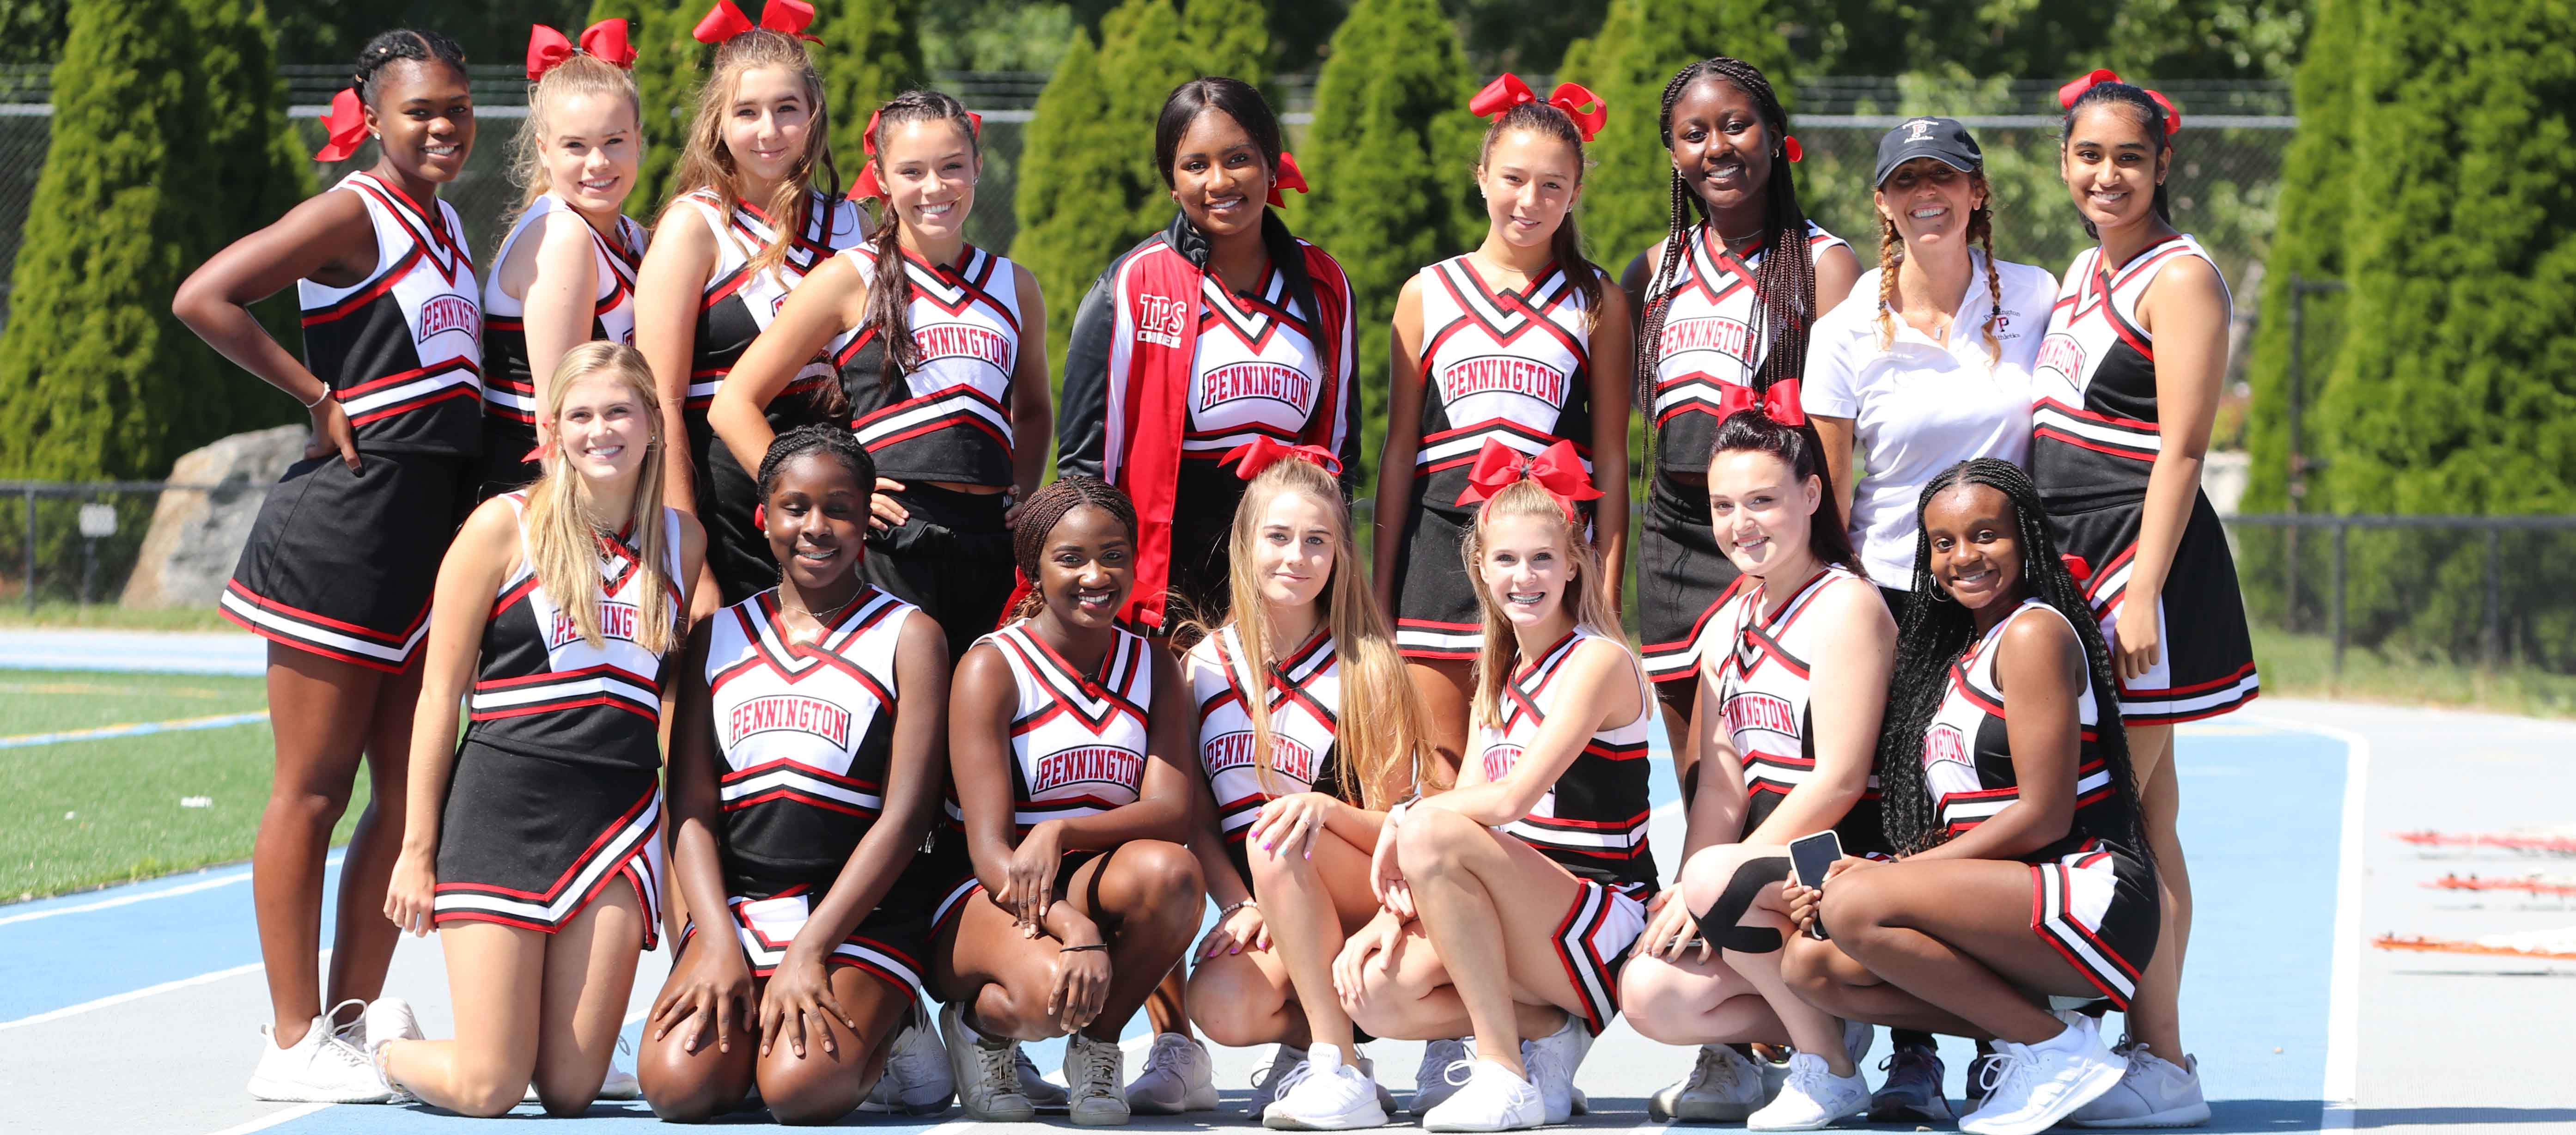 The cheerleading team poses outside